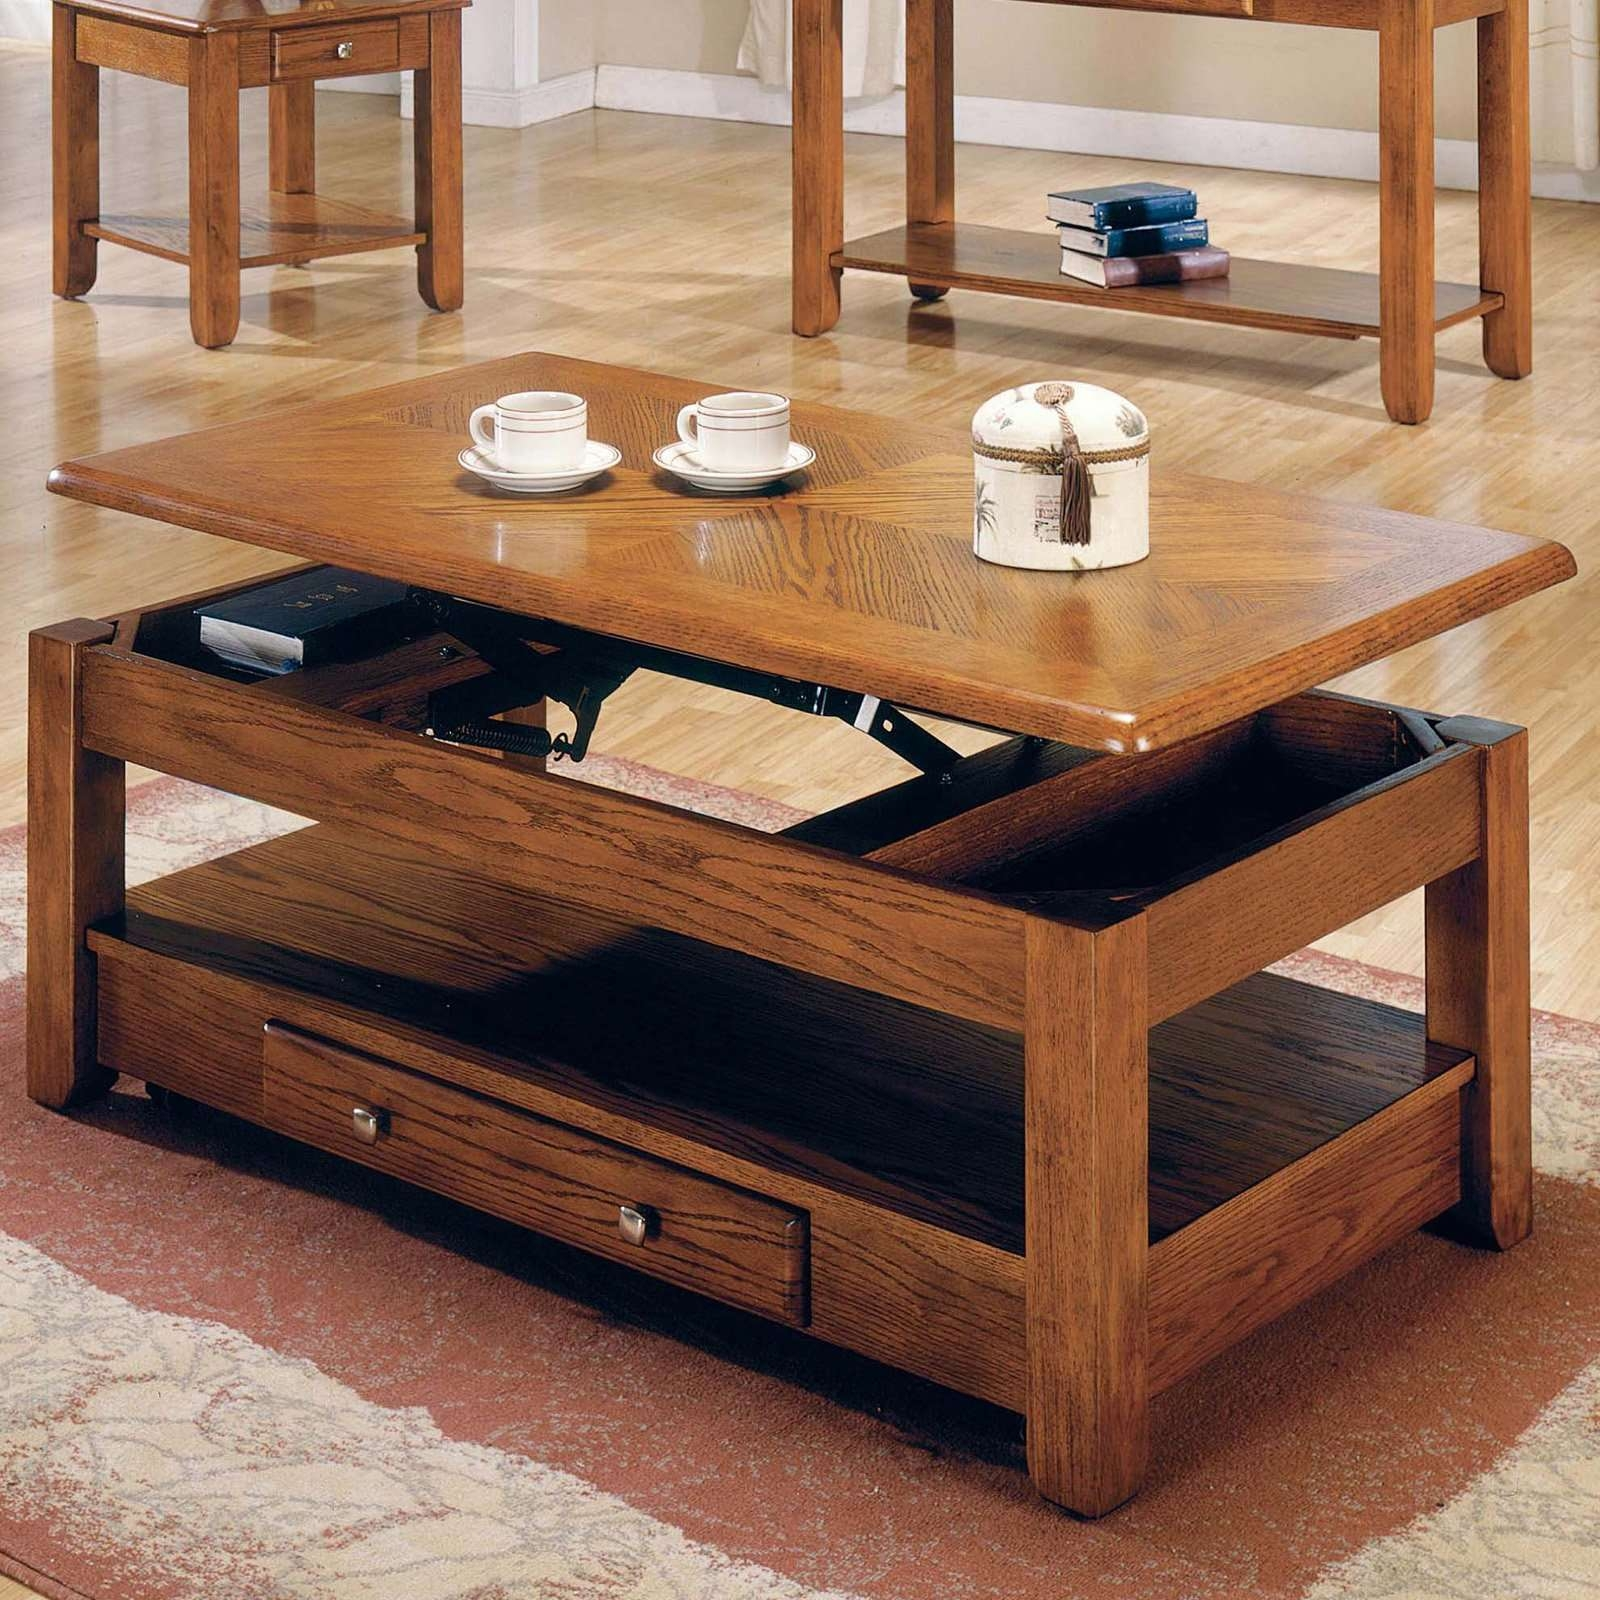 Current Elevating Coffee Tables Within Coffee Tables : Lift Top Coffee Table Target Coffee Table Designs (View 6 of 20)